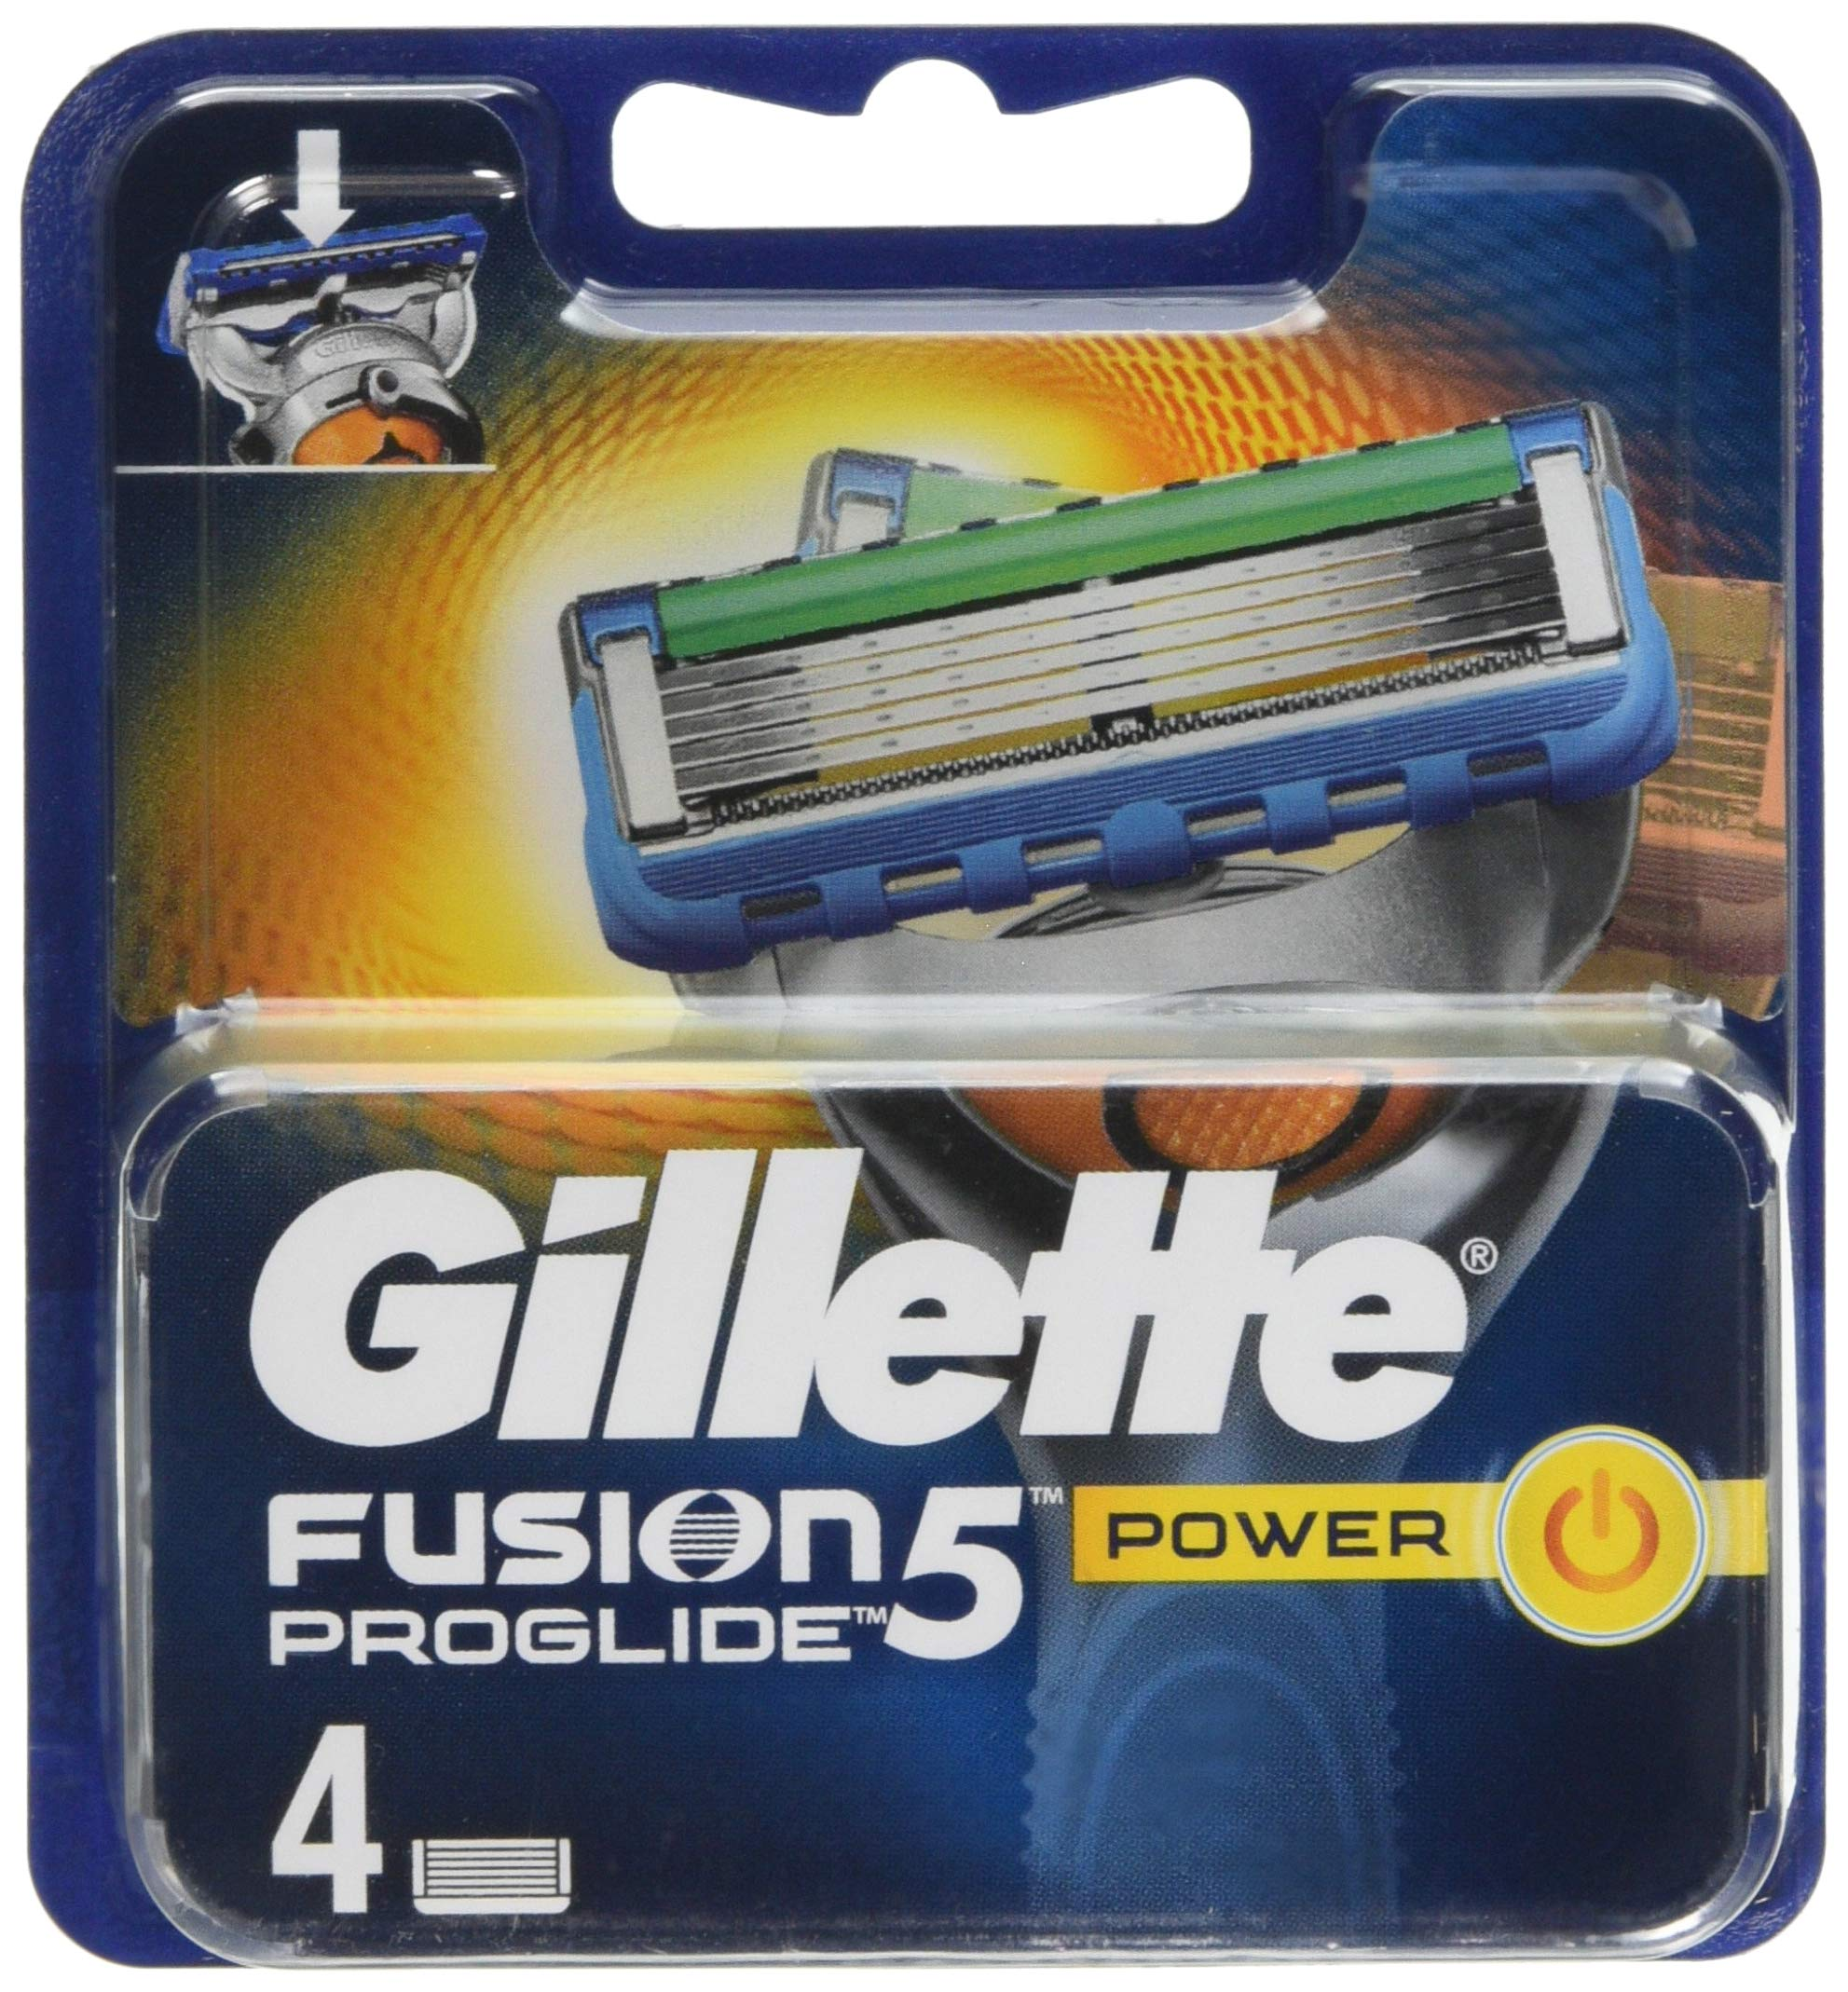 Gillette Fusion5 ProGlide Power Razor Blades for Men, 4 Refills product image